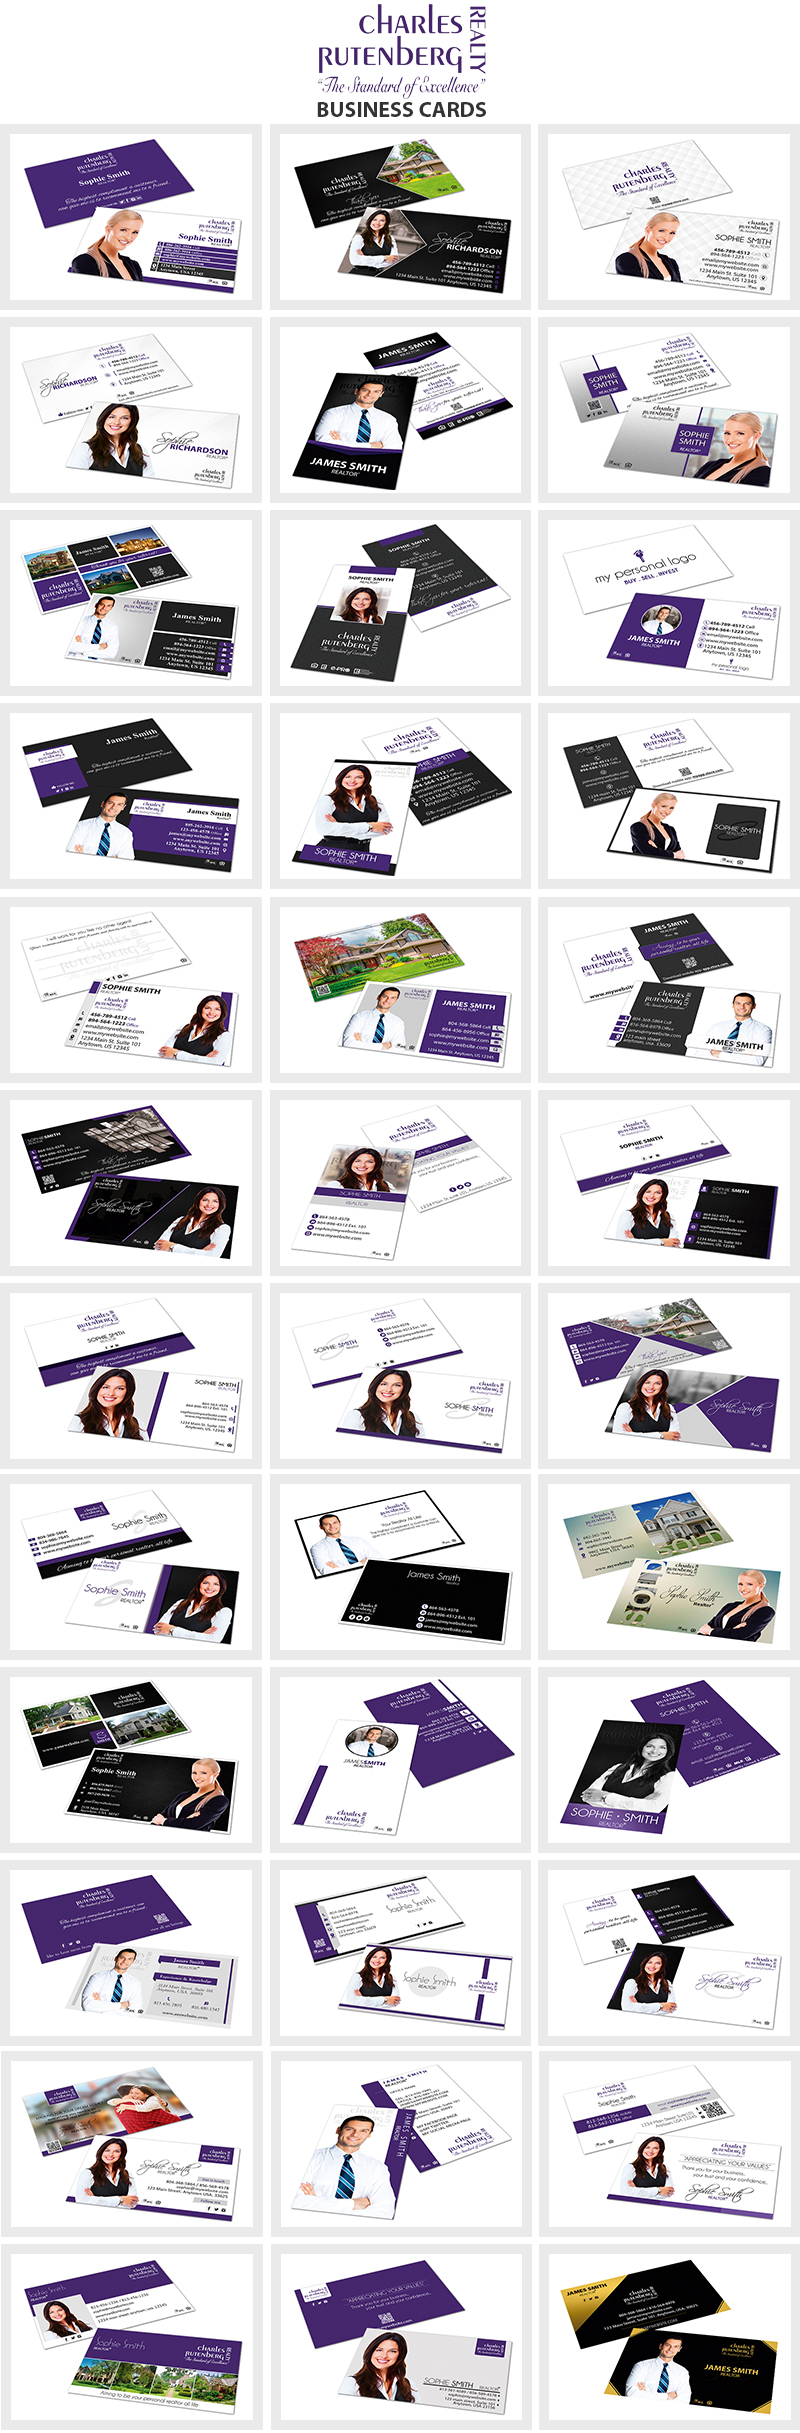 Charles Rutenberg Business Card Templates | Charles Rutenberg Business Card, Charles Rutenberg Cards, Modern Charles Rutenberg Business Cards